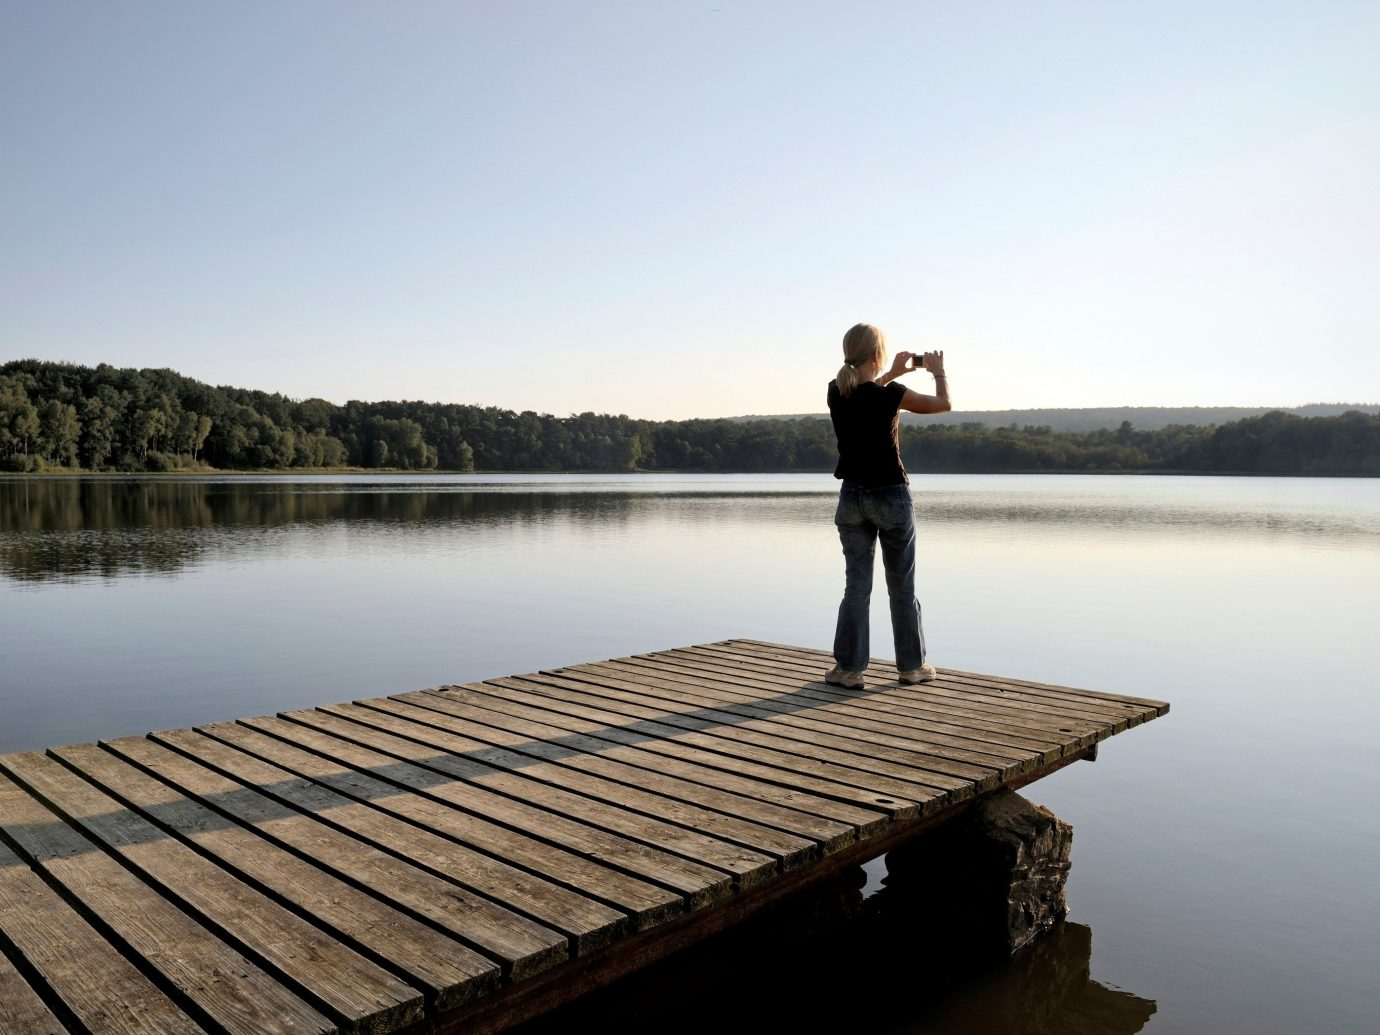 Travel Tips water sky outdoor Lake River dock watercraft rowing reflection Sea reservoir boating